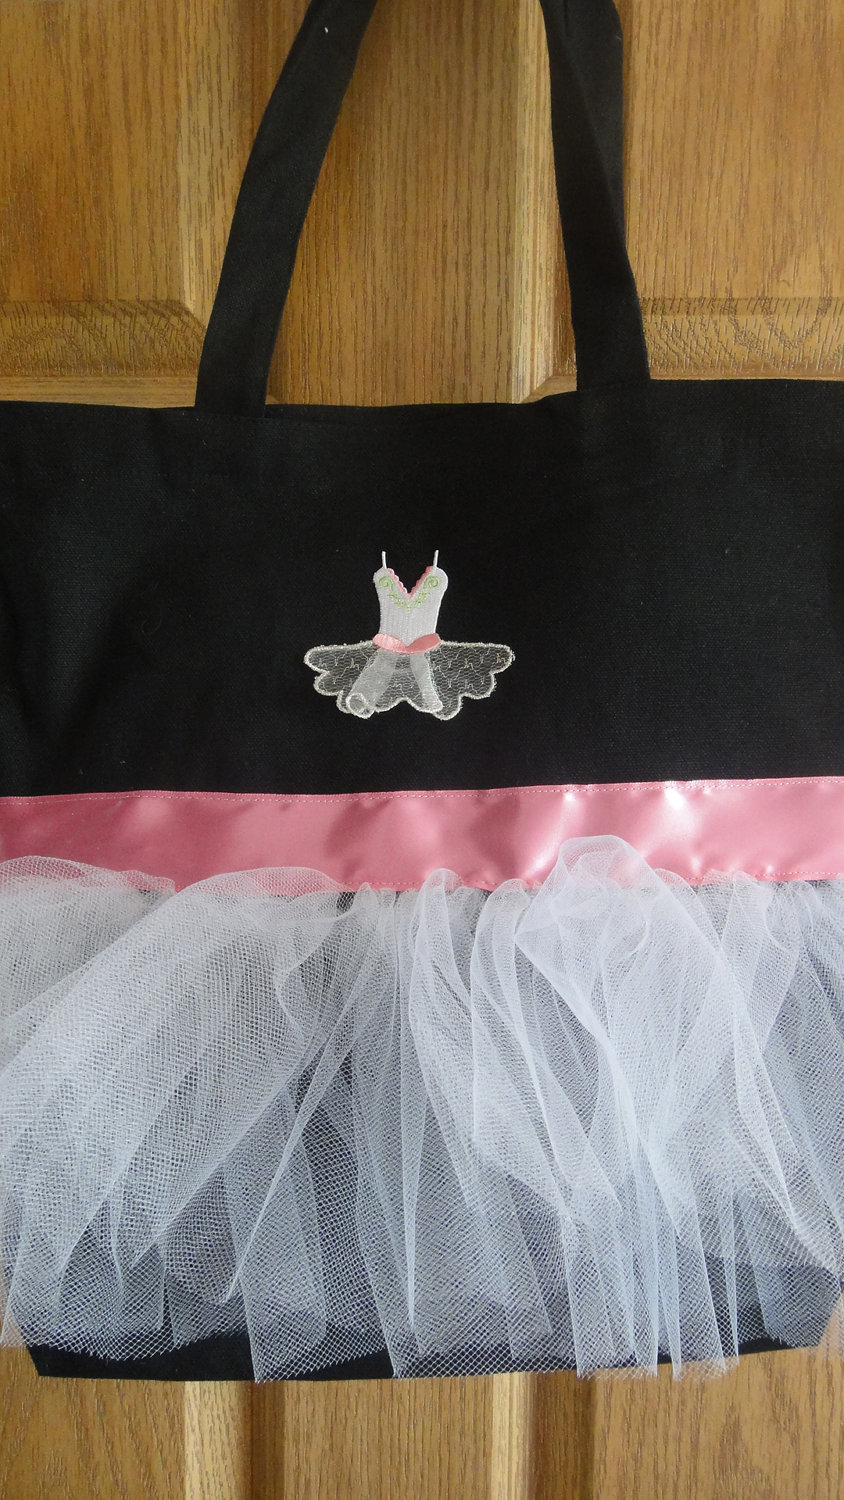 Tutu Tote Dance Bag